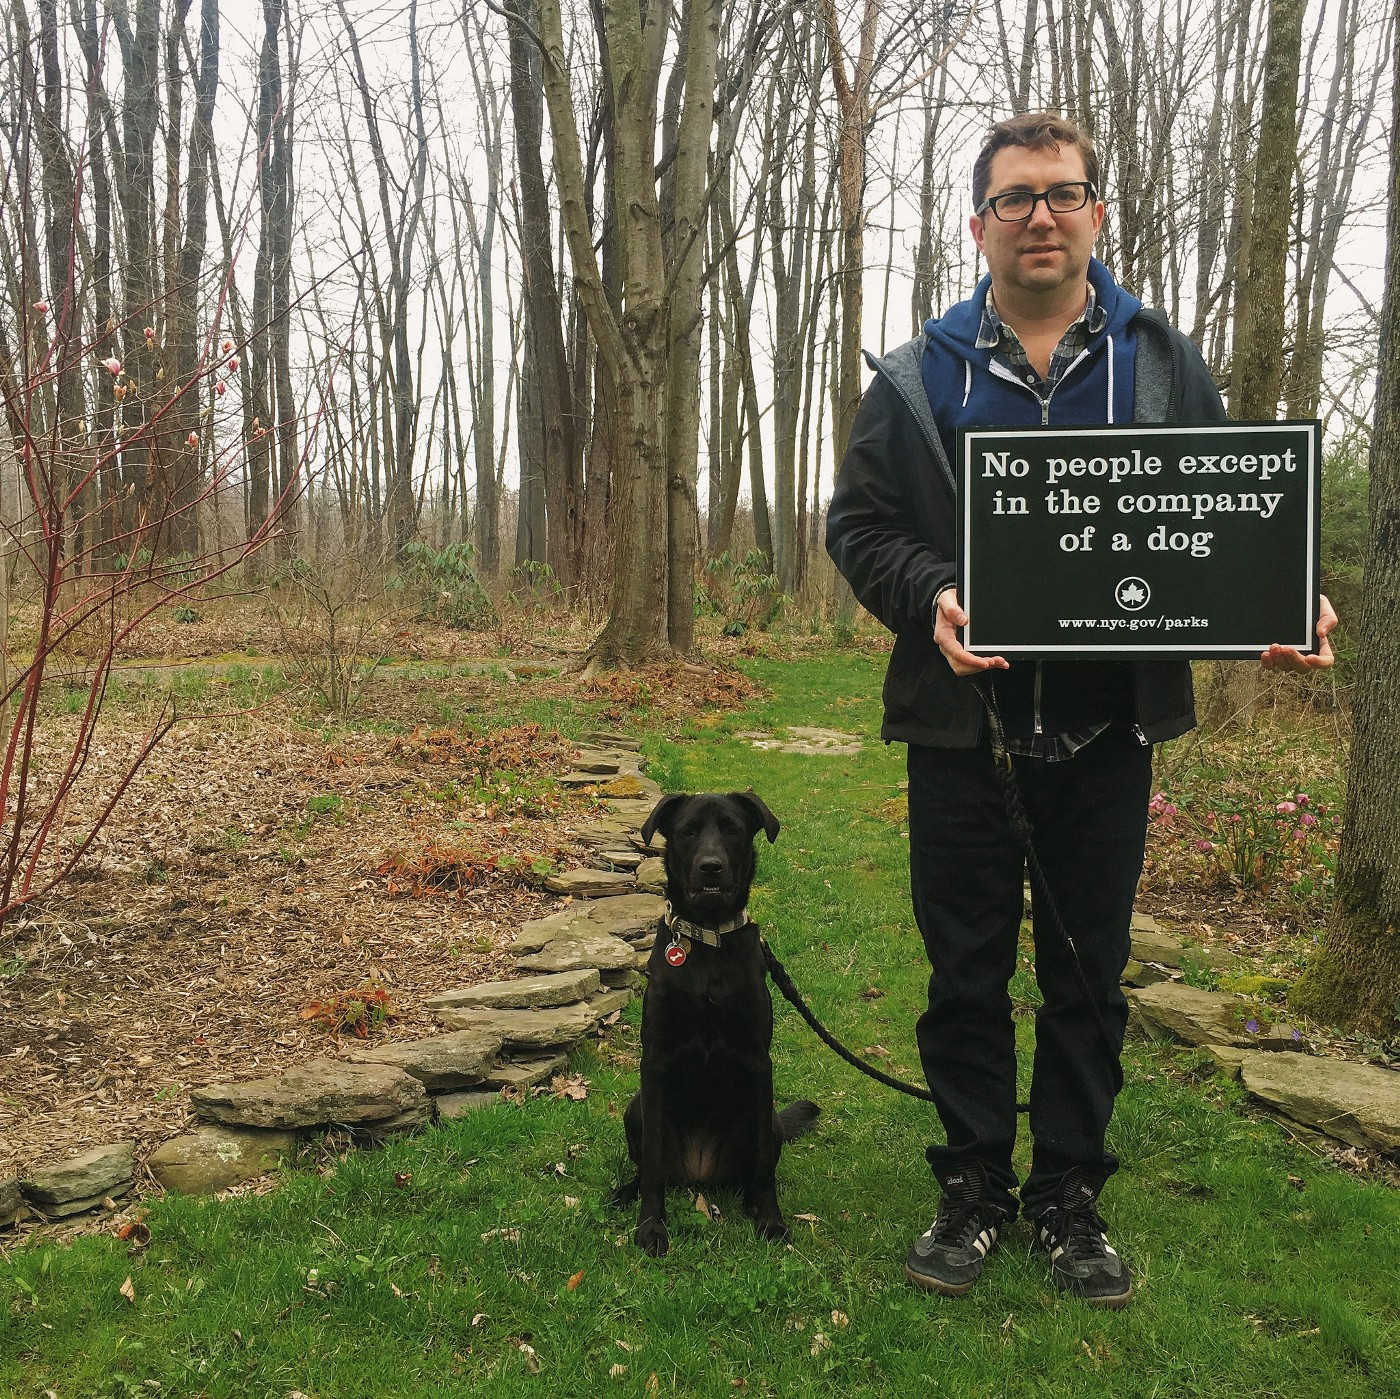 Mat and Nora in the garden holding a sign about no people entering without pets